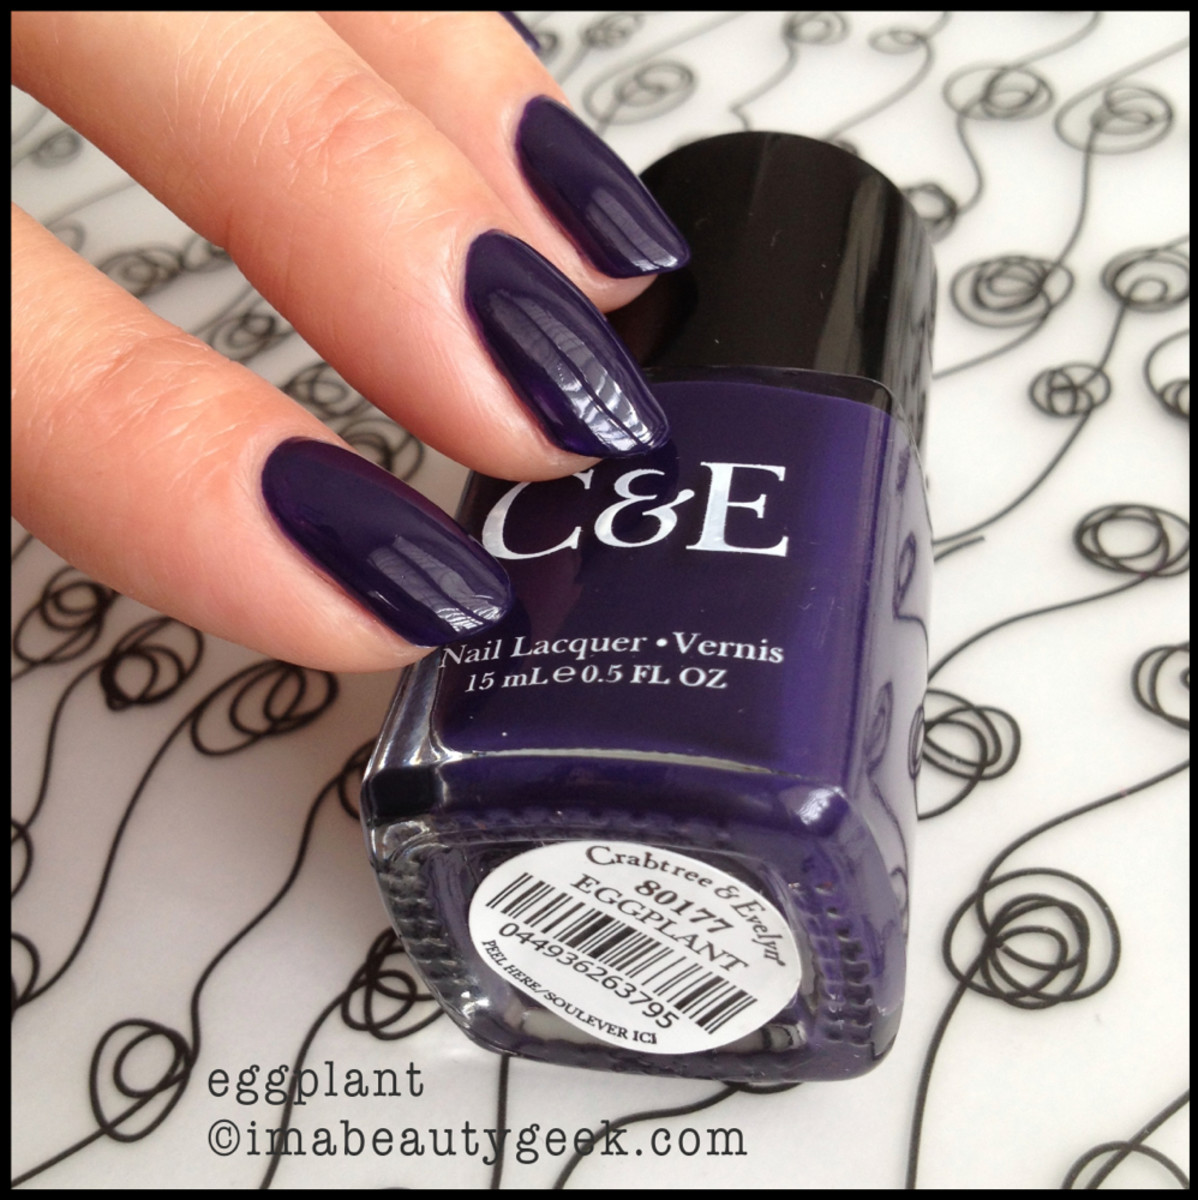 Crabtree & Evelyn Polish Eggplant